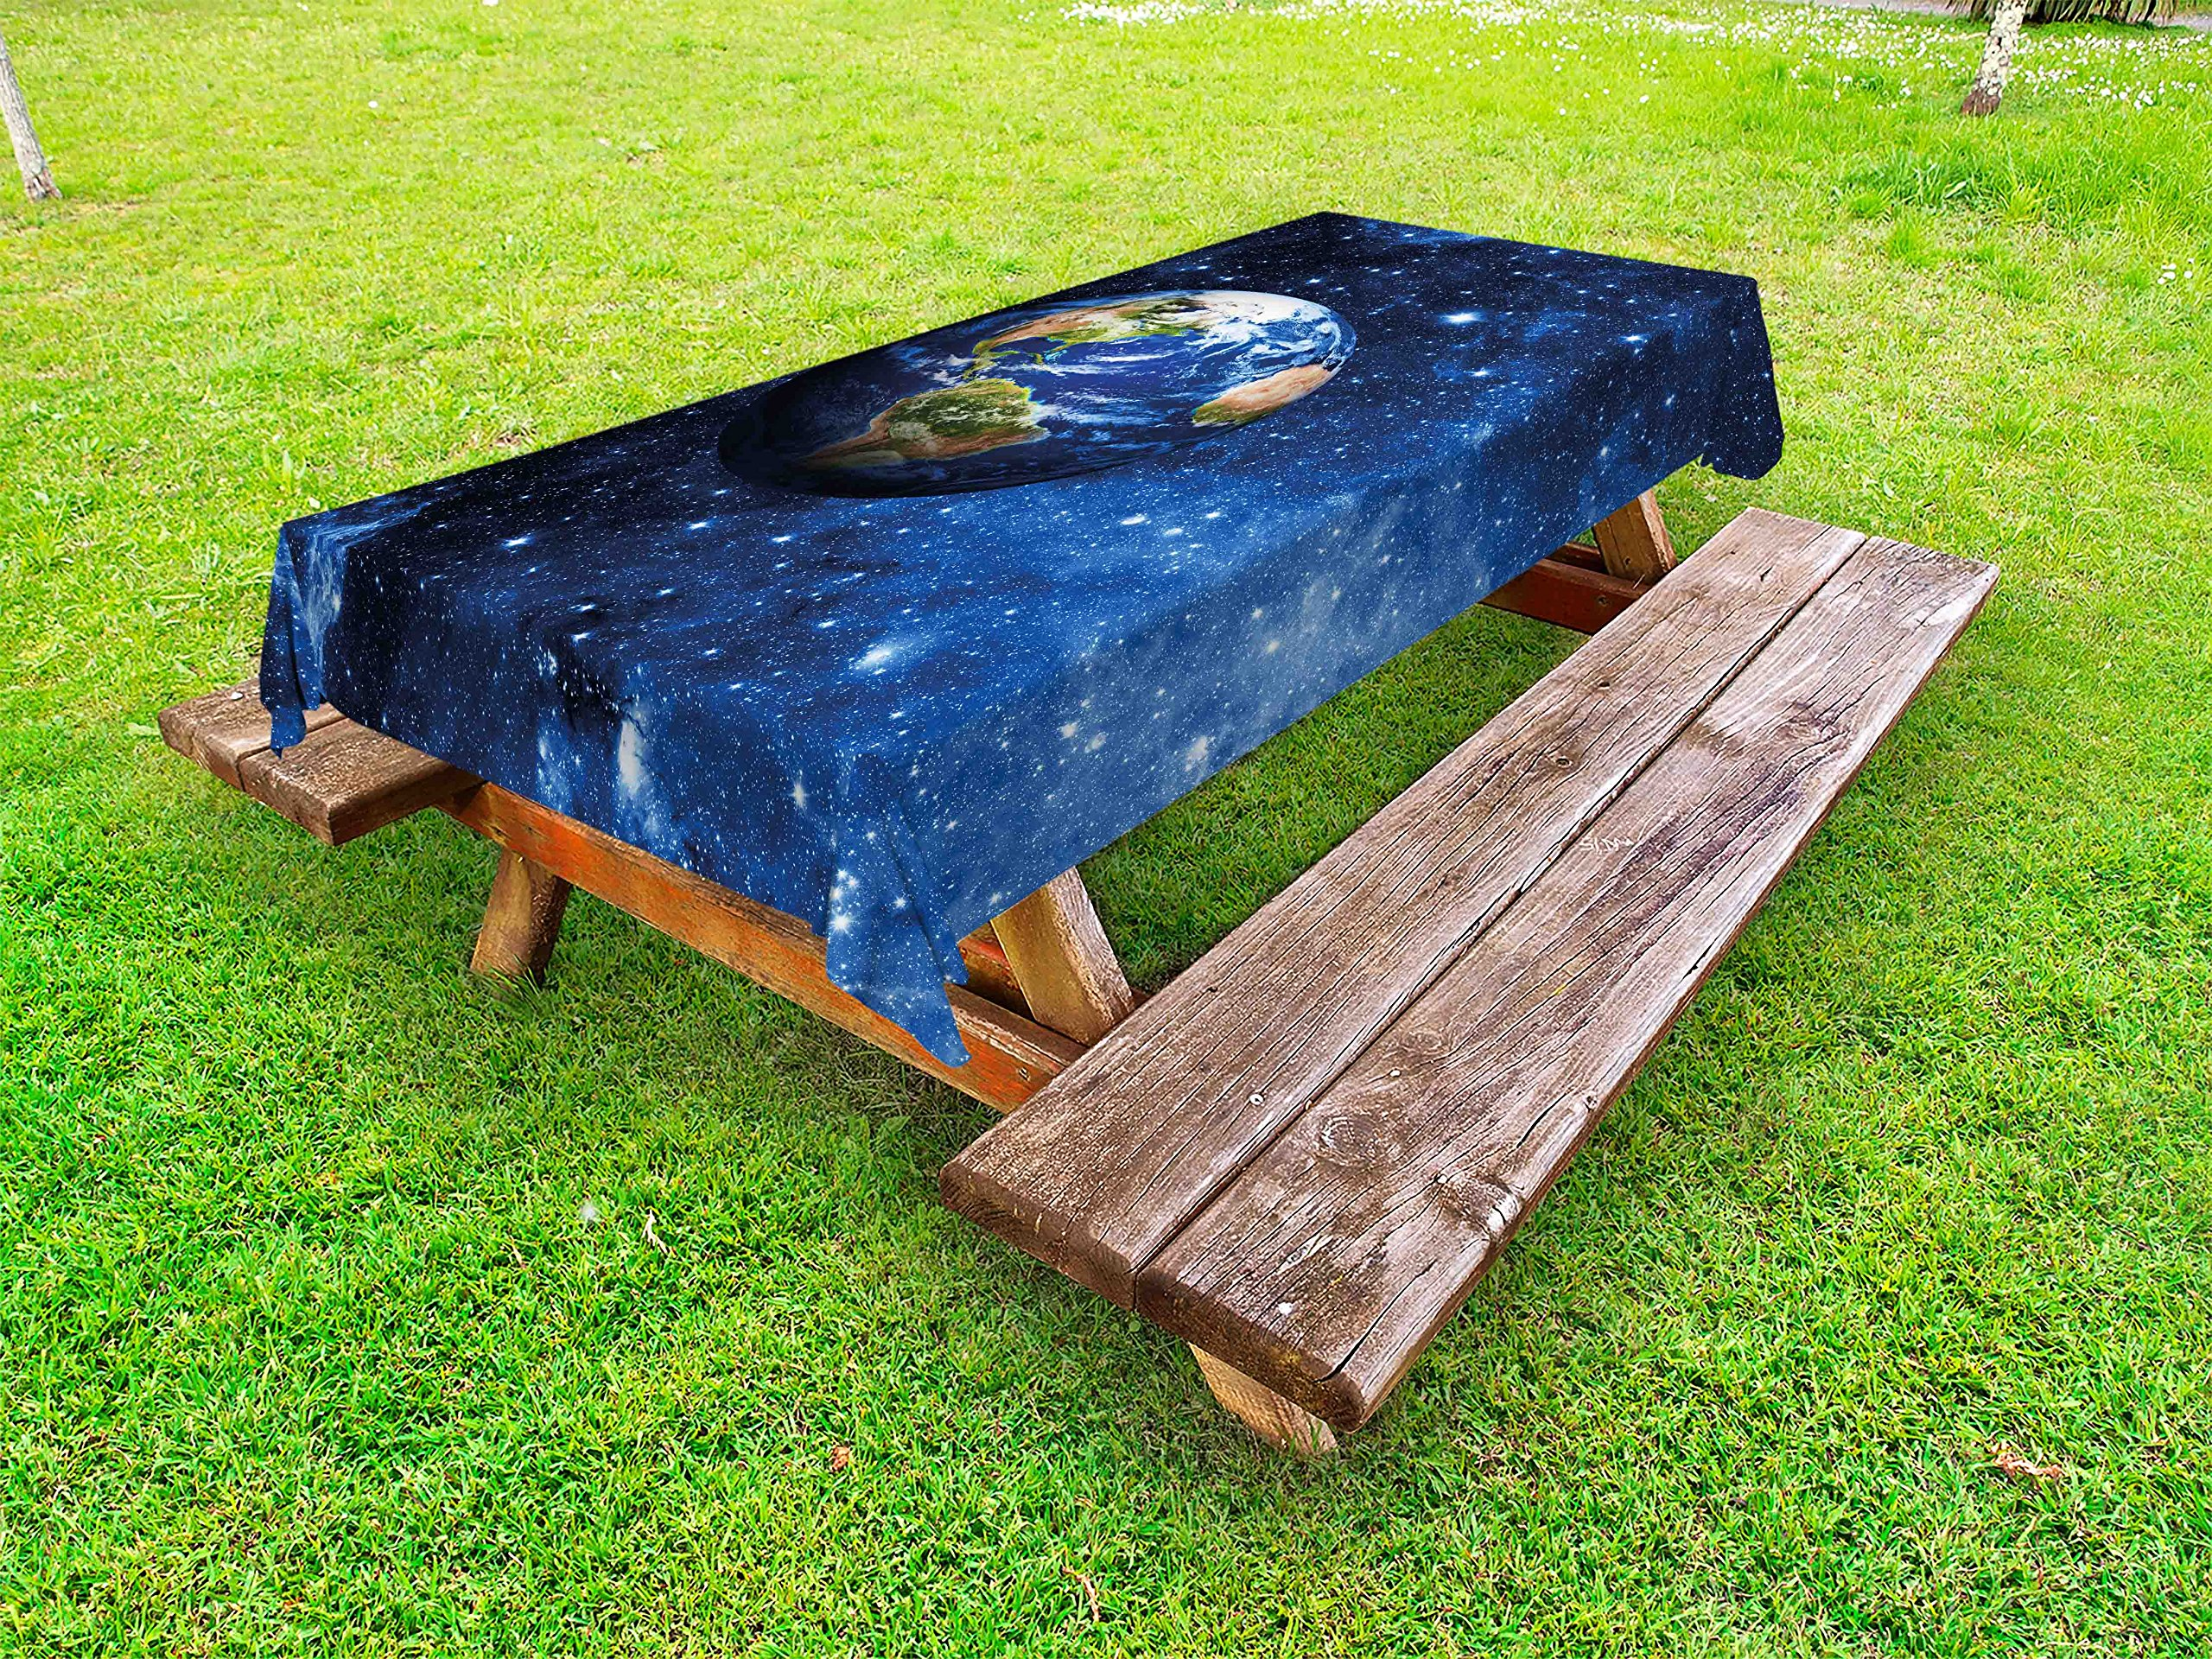 Ambesonne Space Outdoor Tablecloth, Outer View of Planet Earth in Solar System with Stars Life on Globe Themed Image, Decorative Washable Picnic Table Cloth, 58 X 104 inches, Blue Green